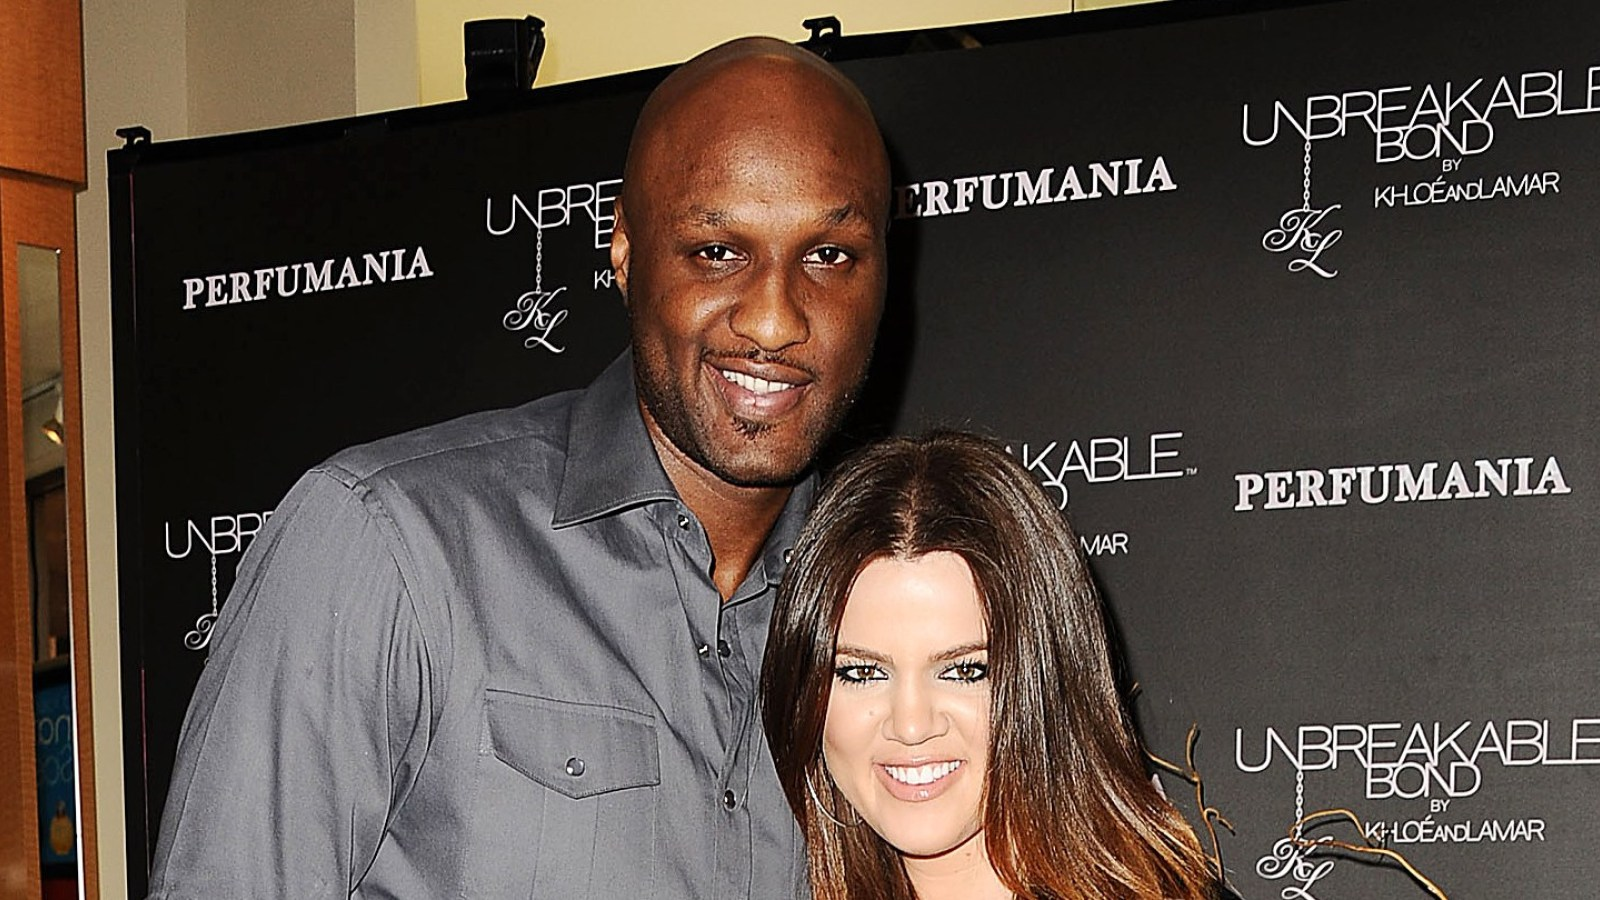 lamar-odom-regrets-cheating-on-khloe-kardashian-and-wishes-he-were-more-of-a-man-fans-believe-they-are-soulmates